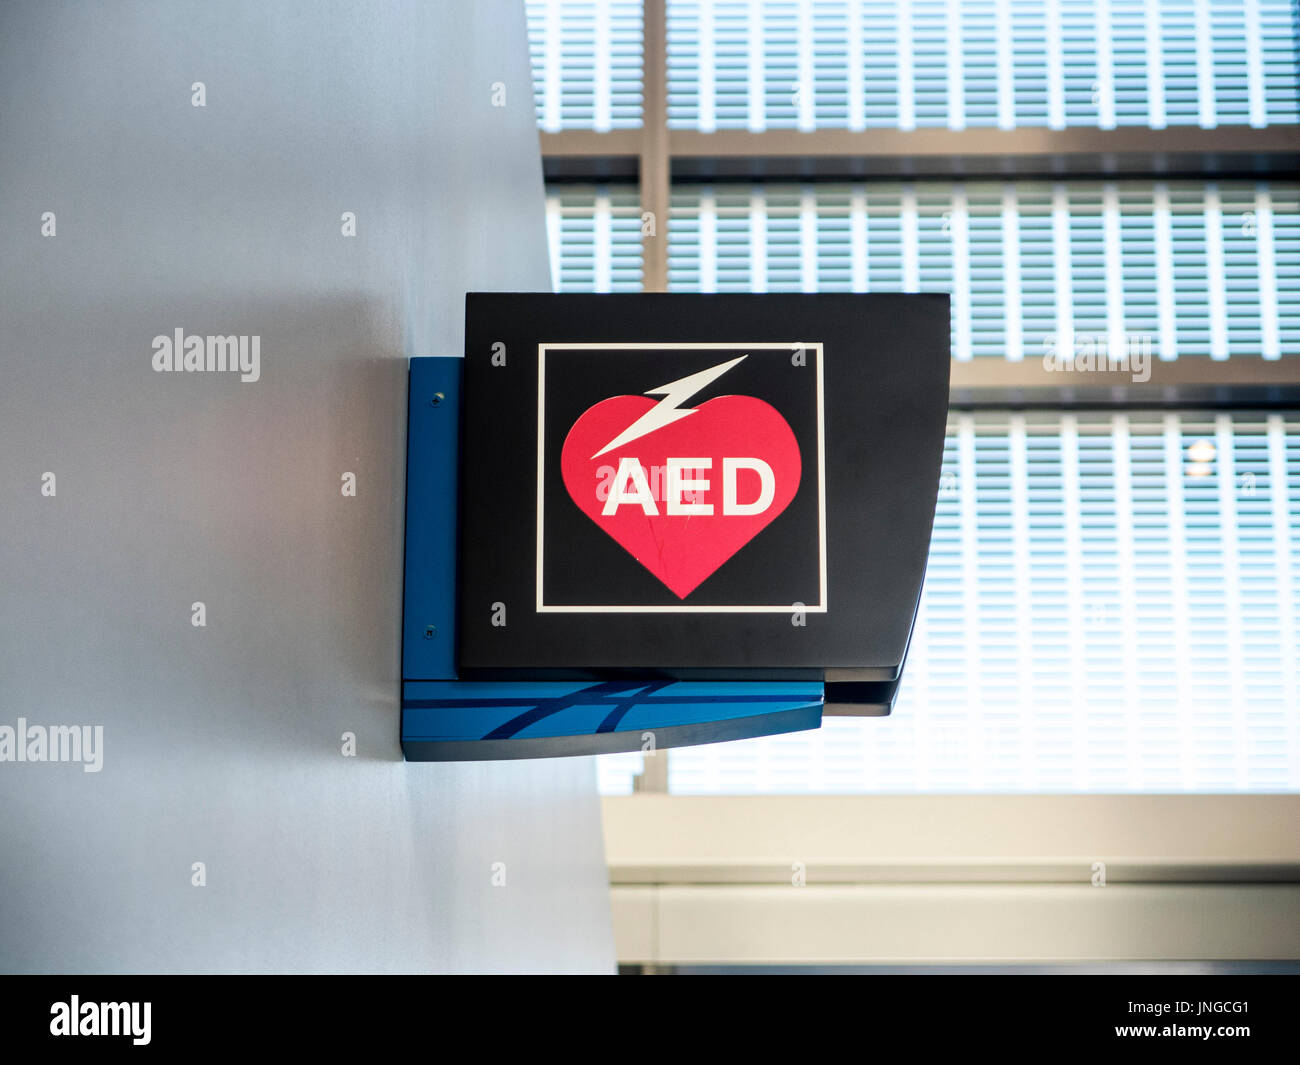 Automated External Defibrillator (AED)  signage - Stock Image